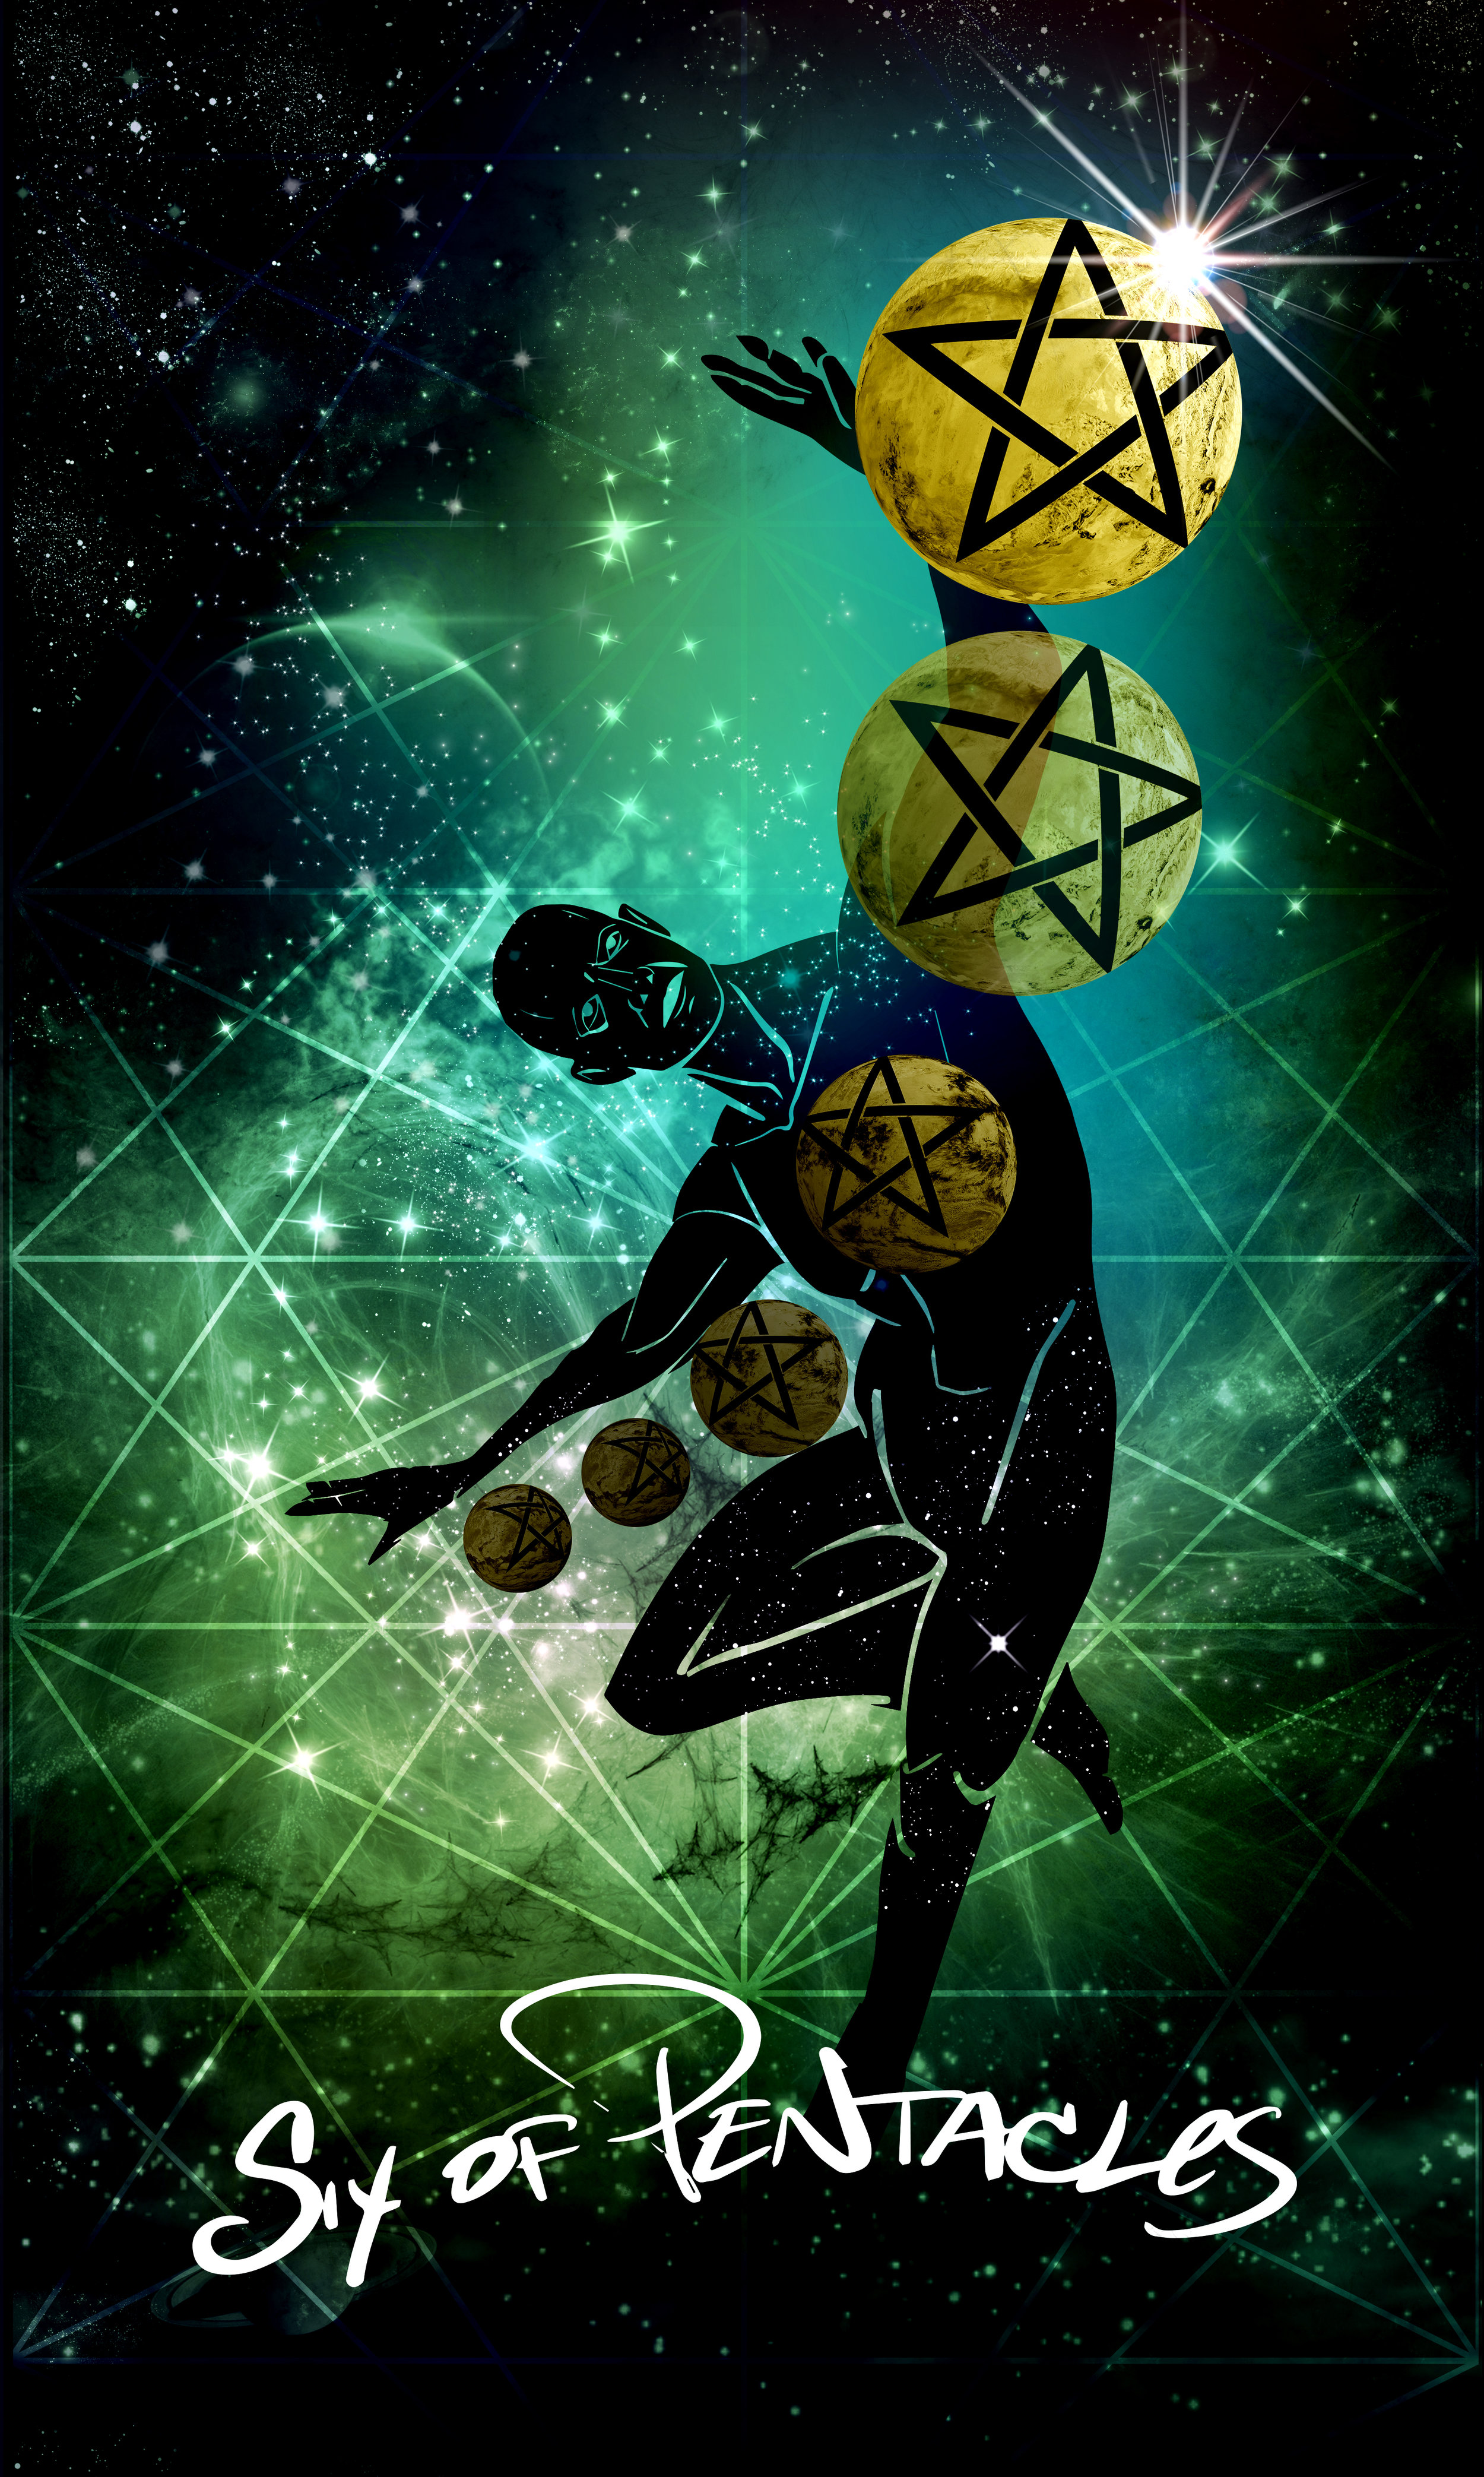 6_SIX_OF_PENTACLES.jpg